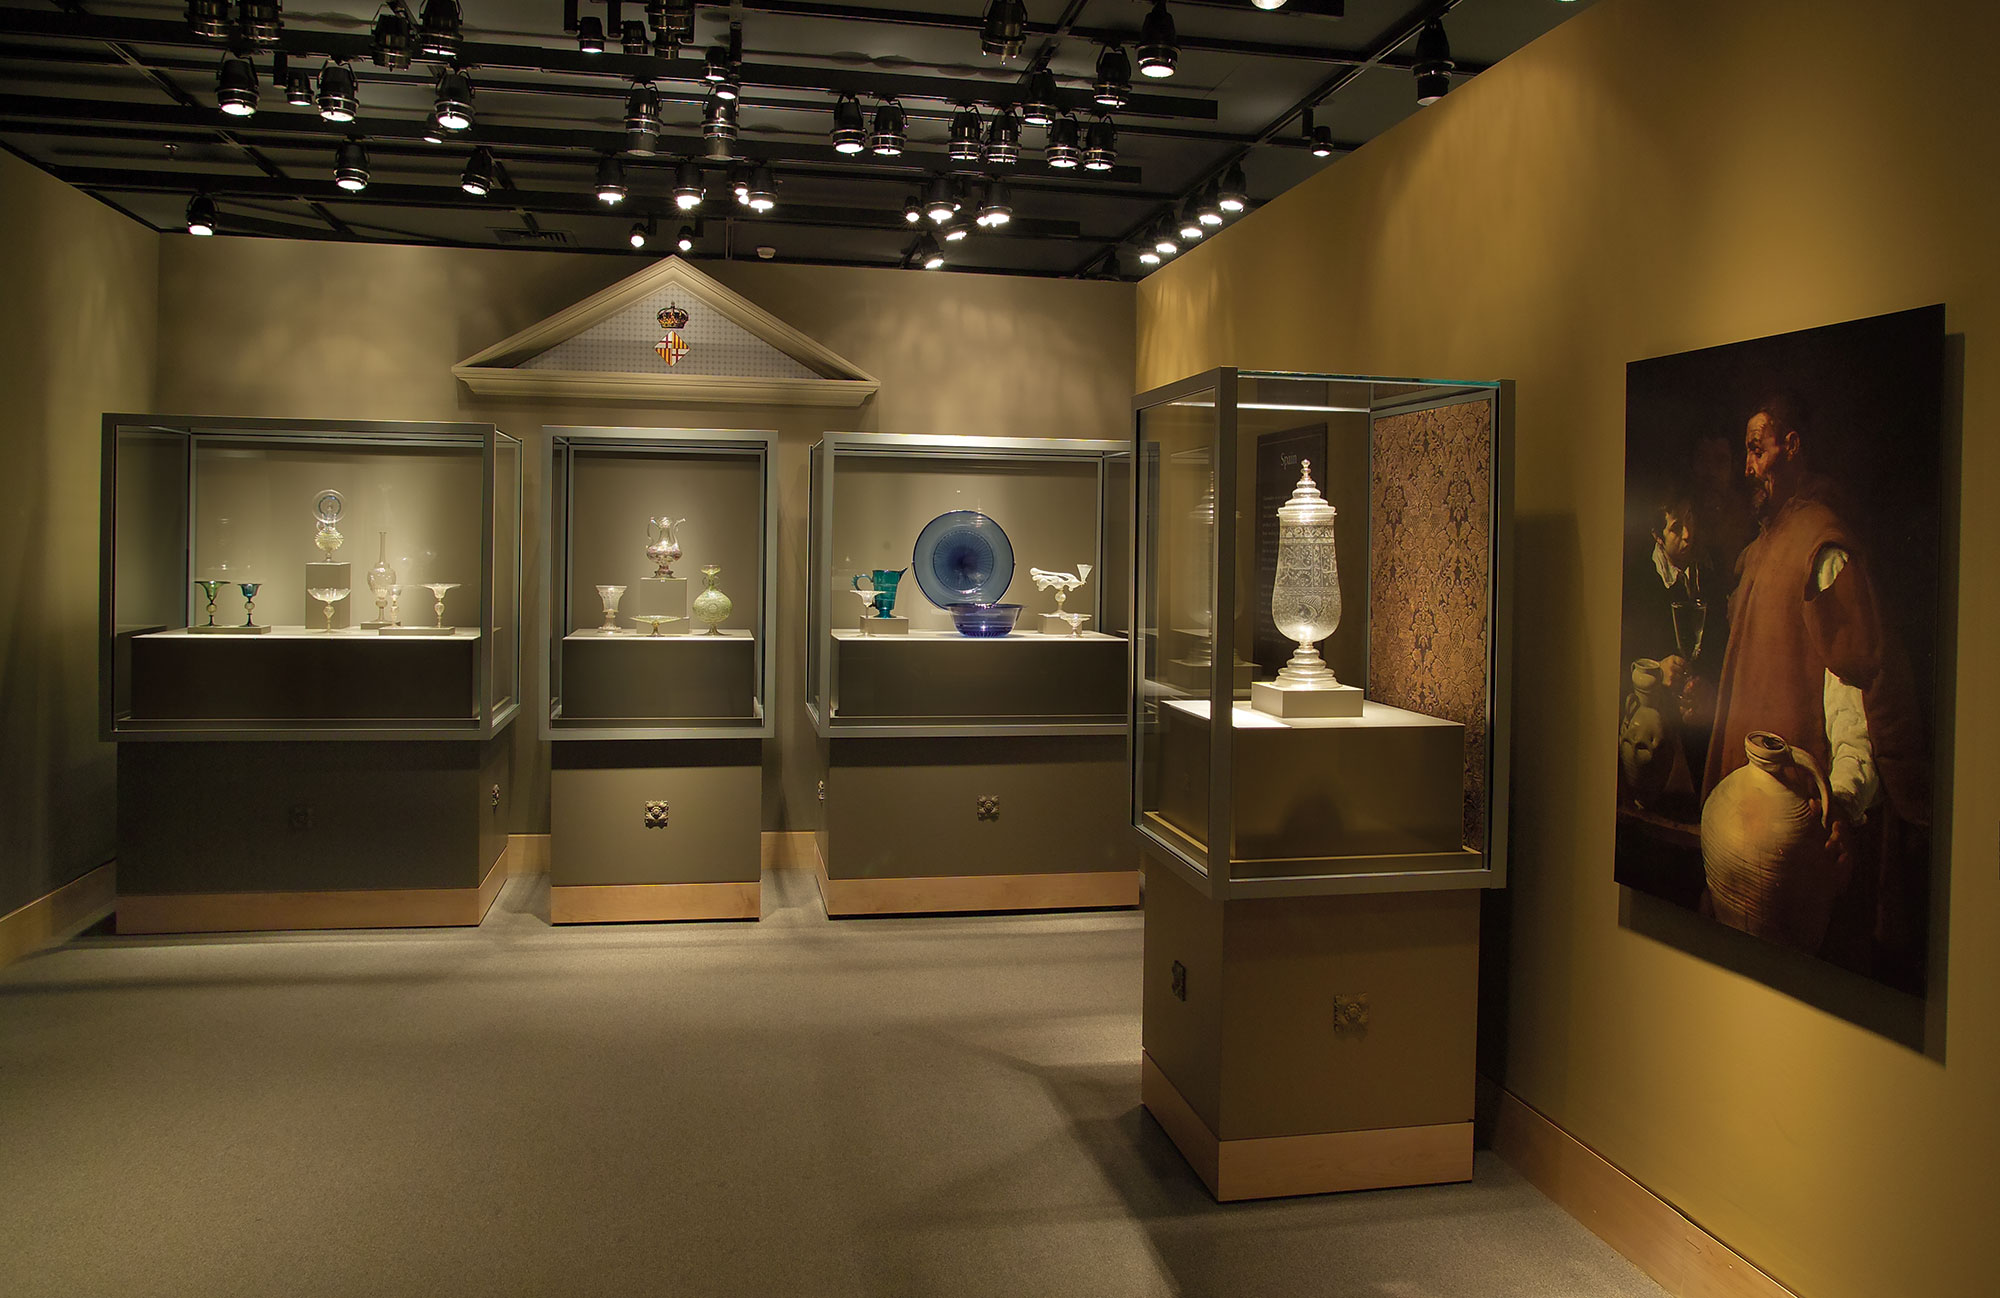 Spain area of Beyond Venice exhibition showing four object cases